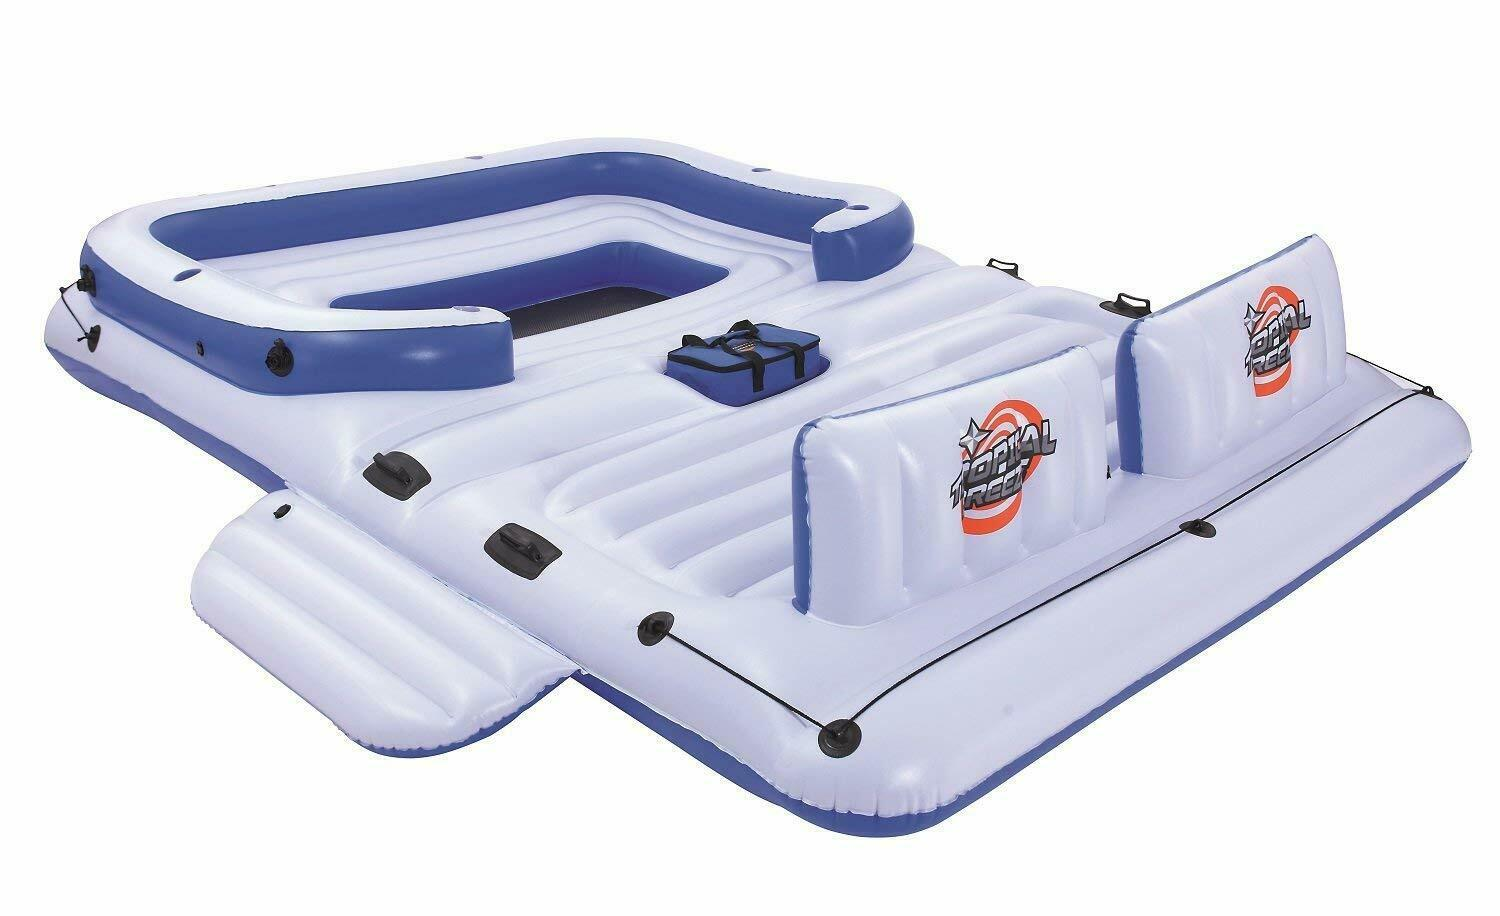 Gigantic Inflatable 6-Adult Pool Party Float